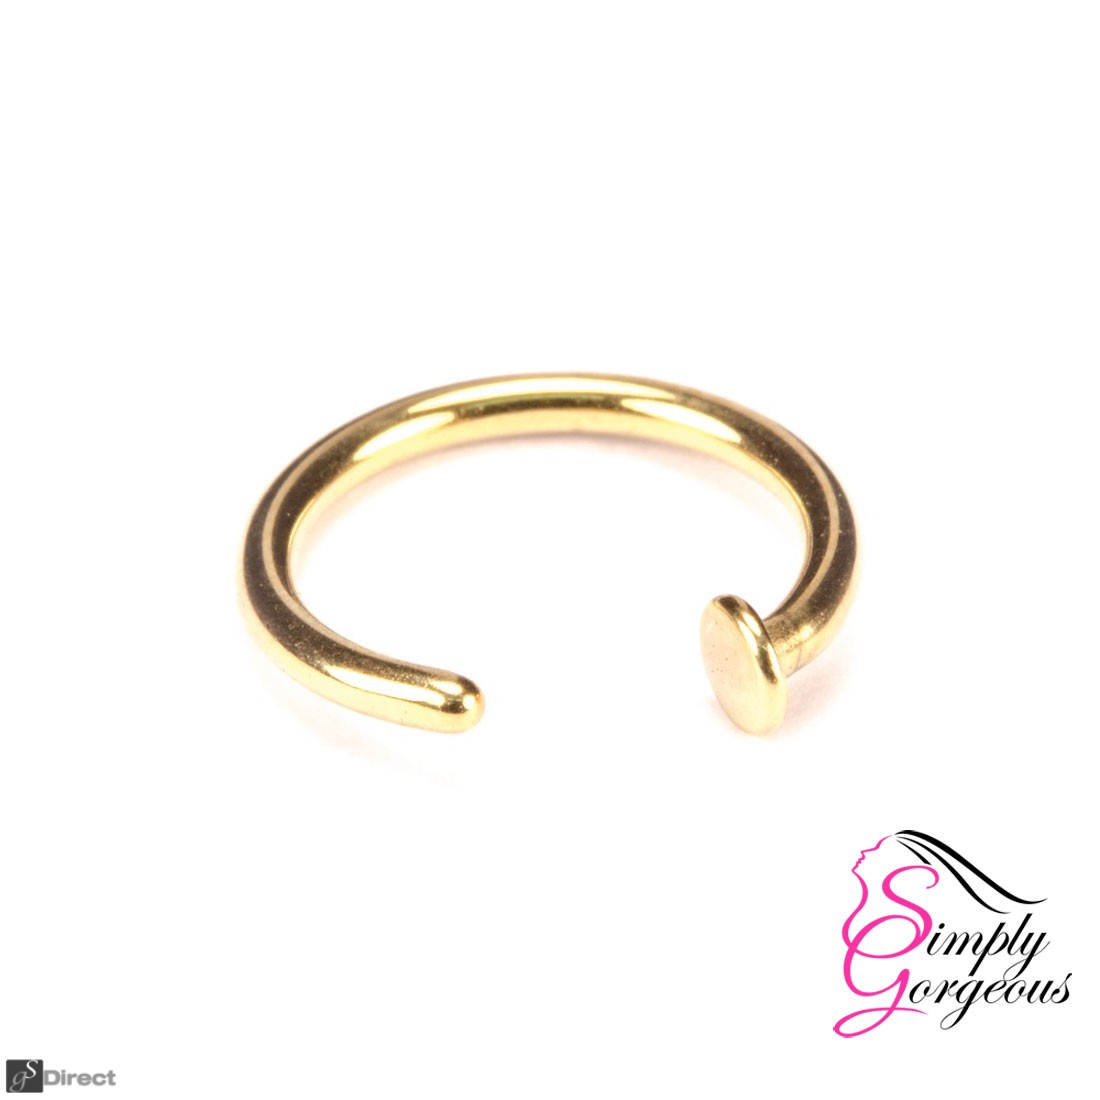 Surgical Steel Open Nose Ring Hoop - Gold